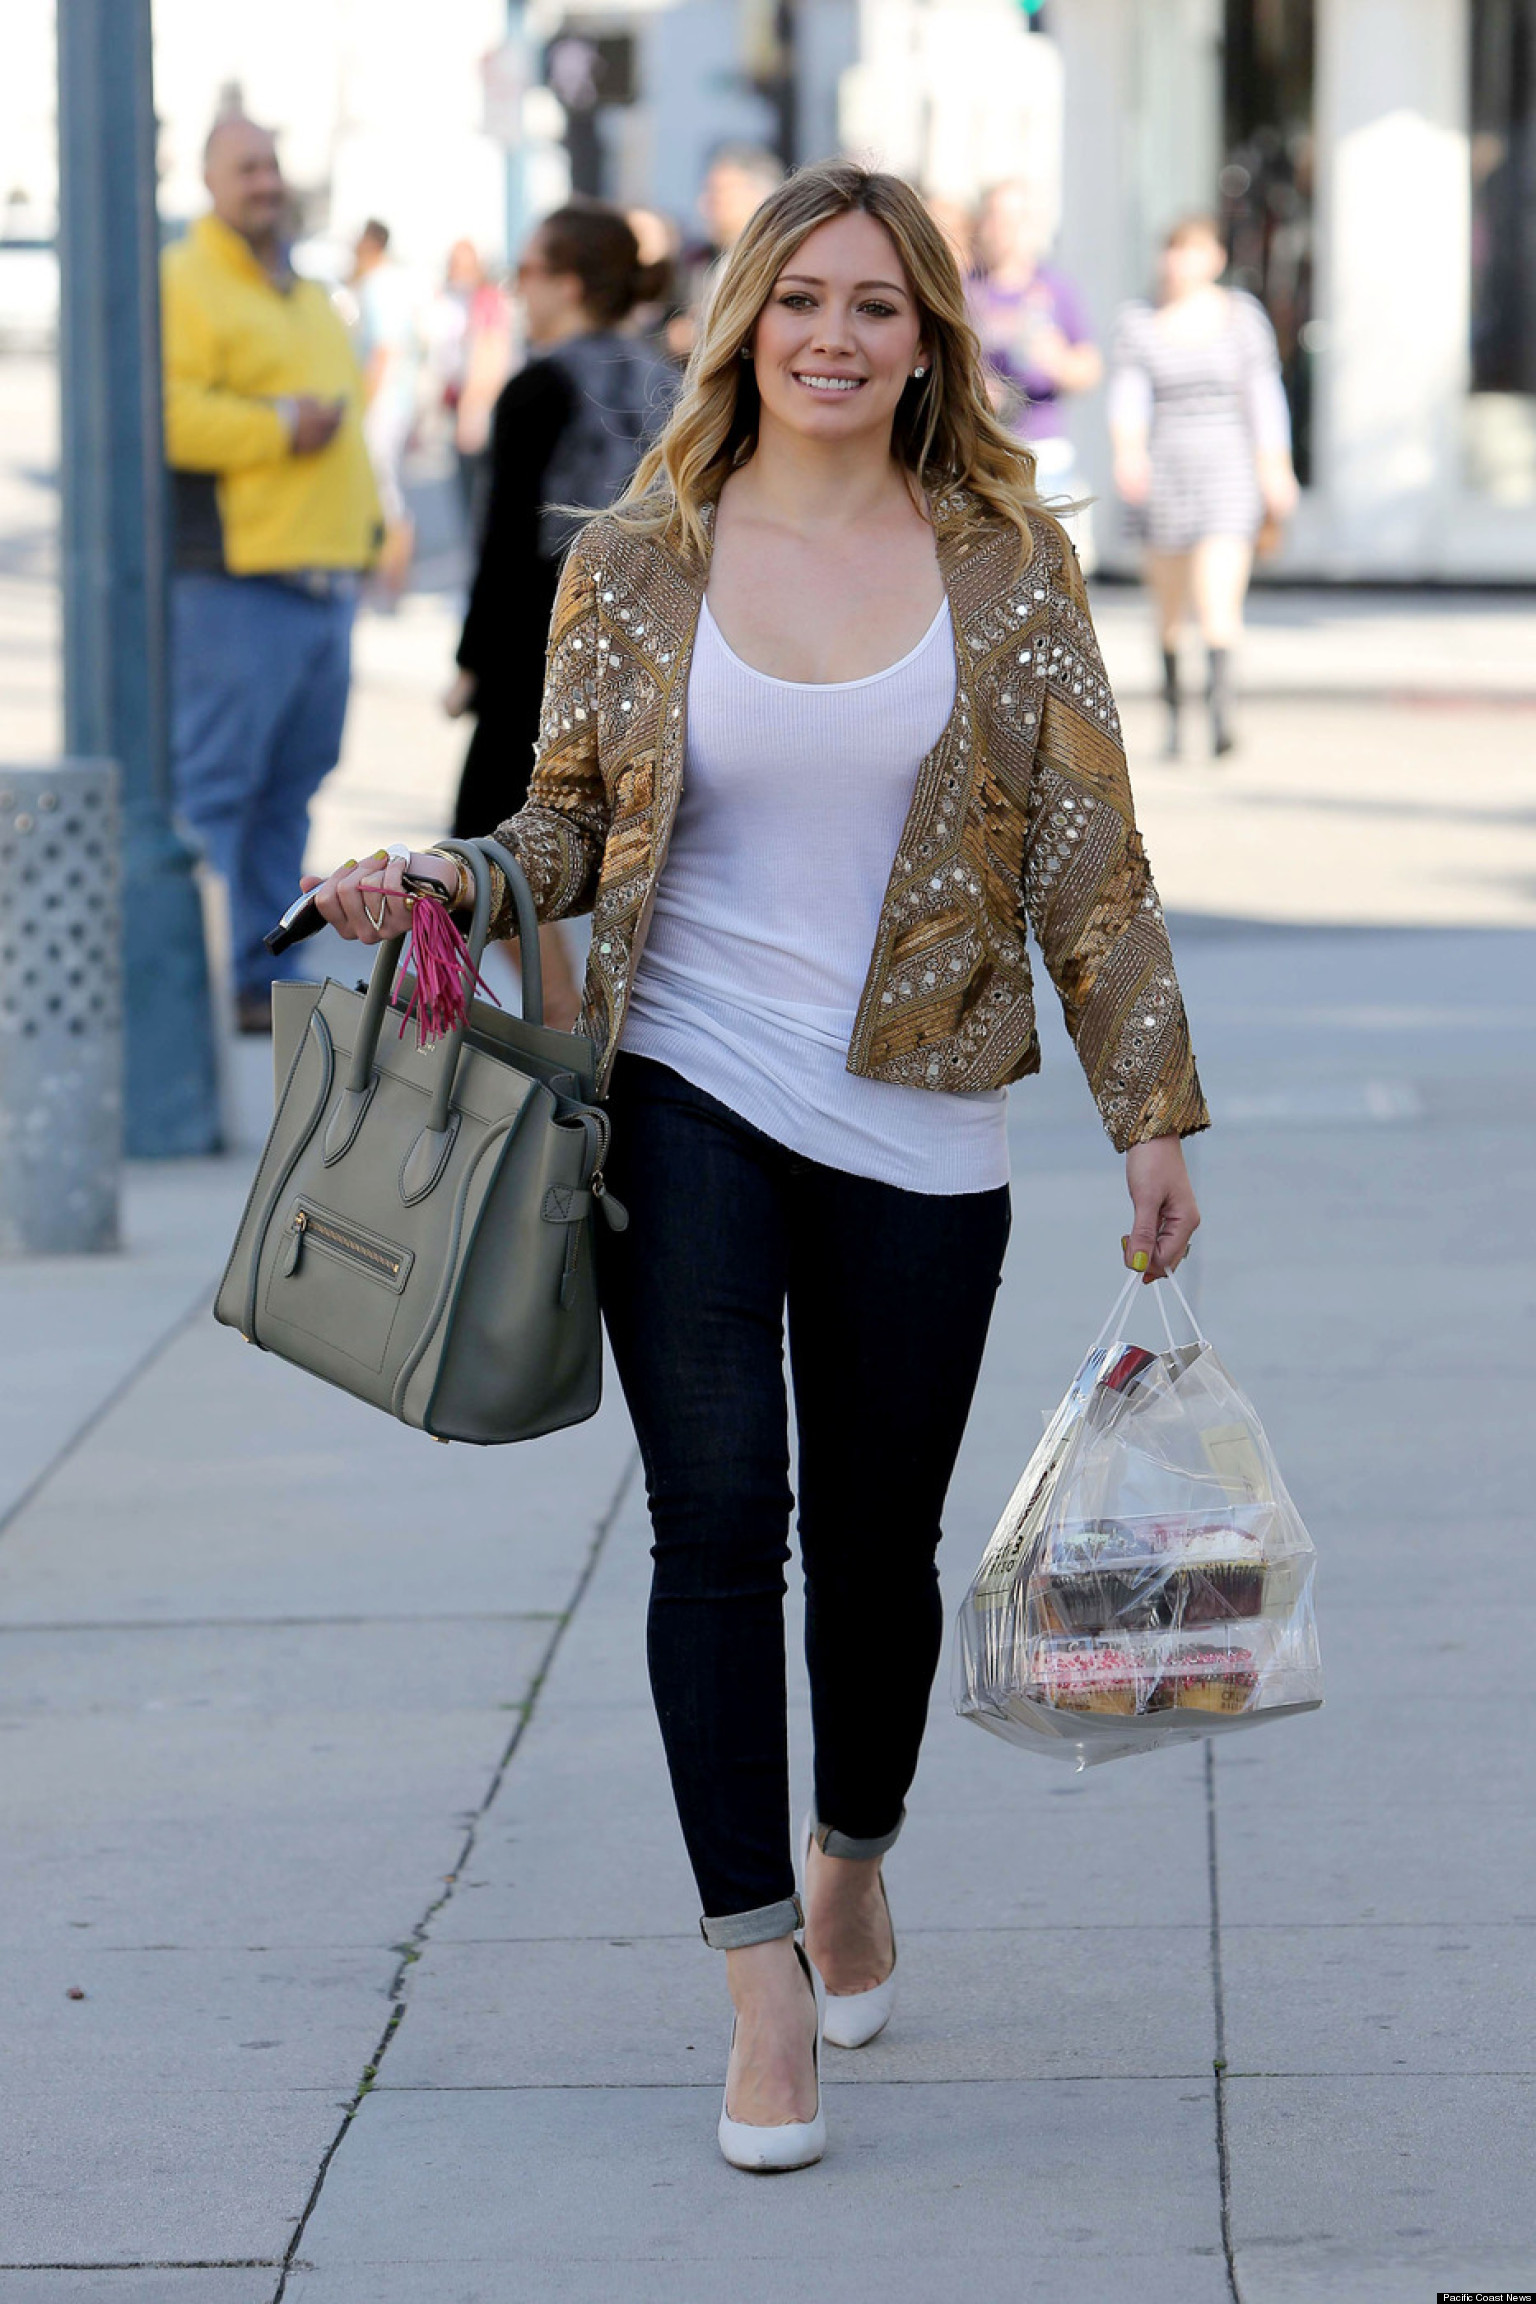 Hilary Duff Weight Loss: Singer Lost 30 Pounds Since ...